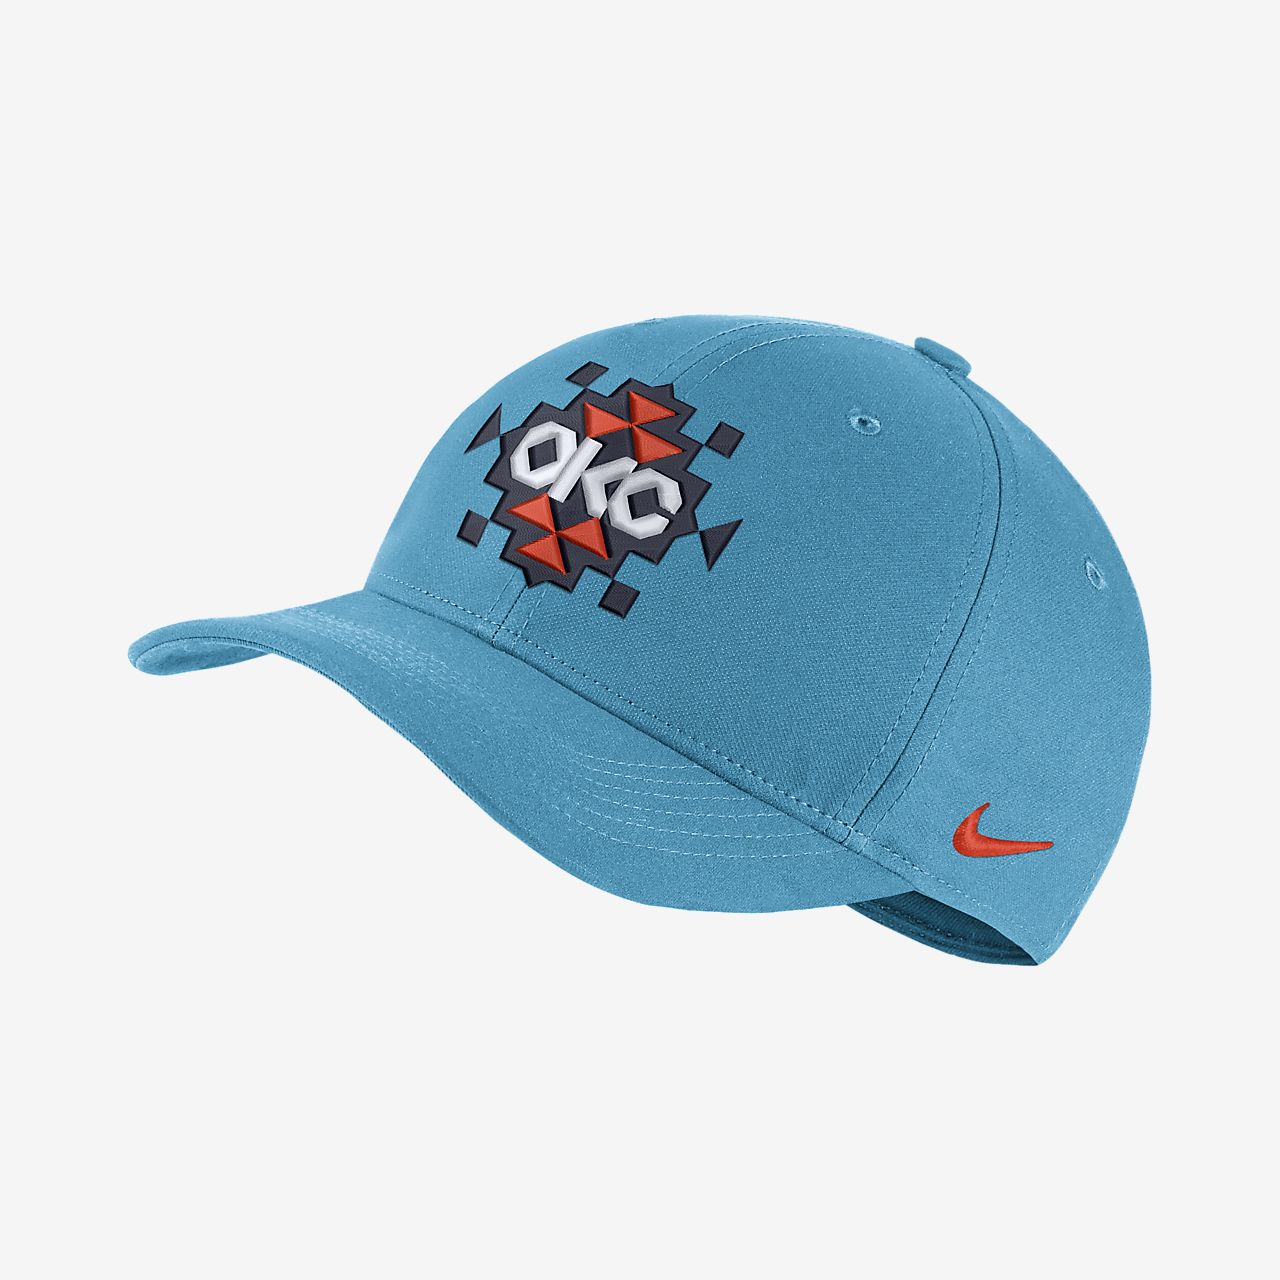 new arrival a3bfa 7c5cf Oklahoma city thunder city edition hat | NBA Playoffs: Must ...